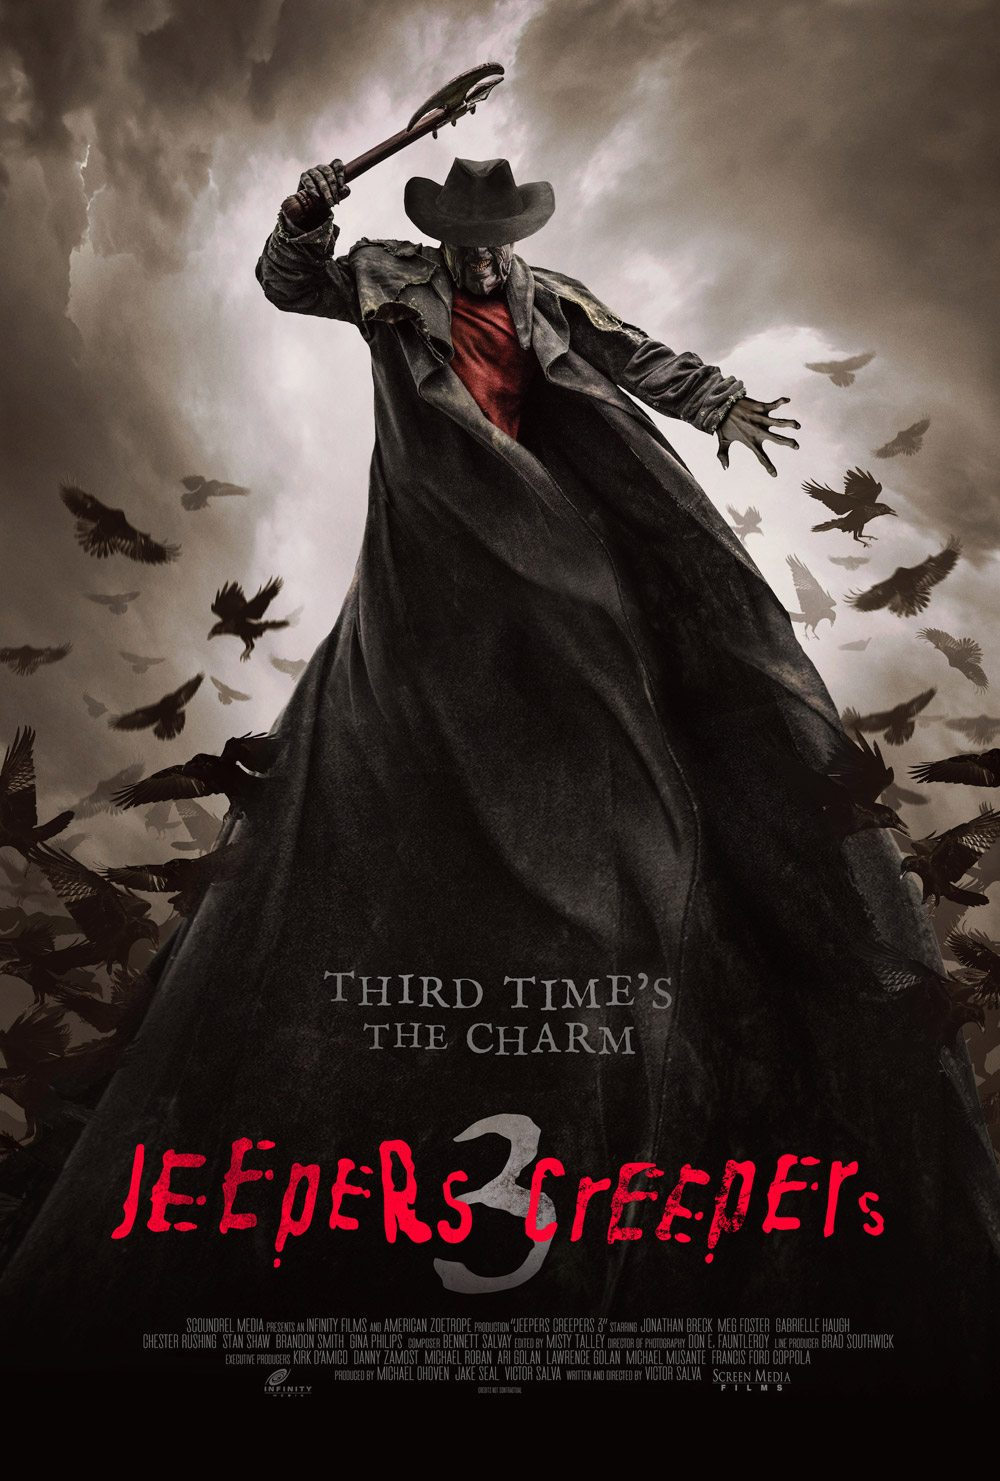 jeepers creepers 3 - First Stills: Jeepers Creepers 3